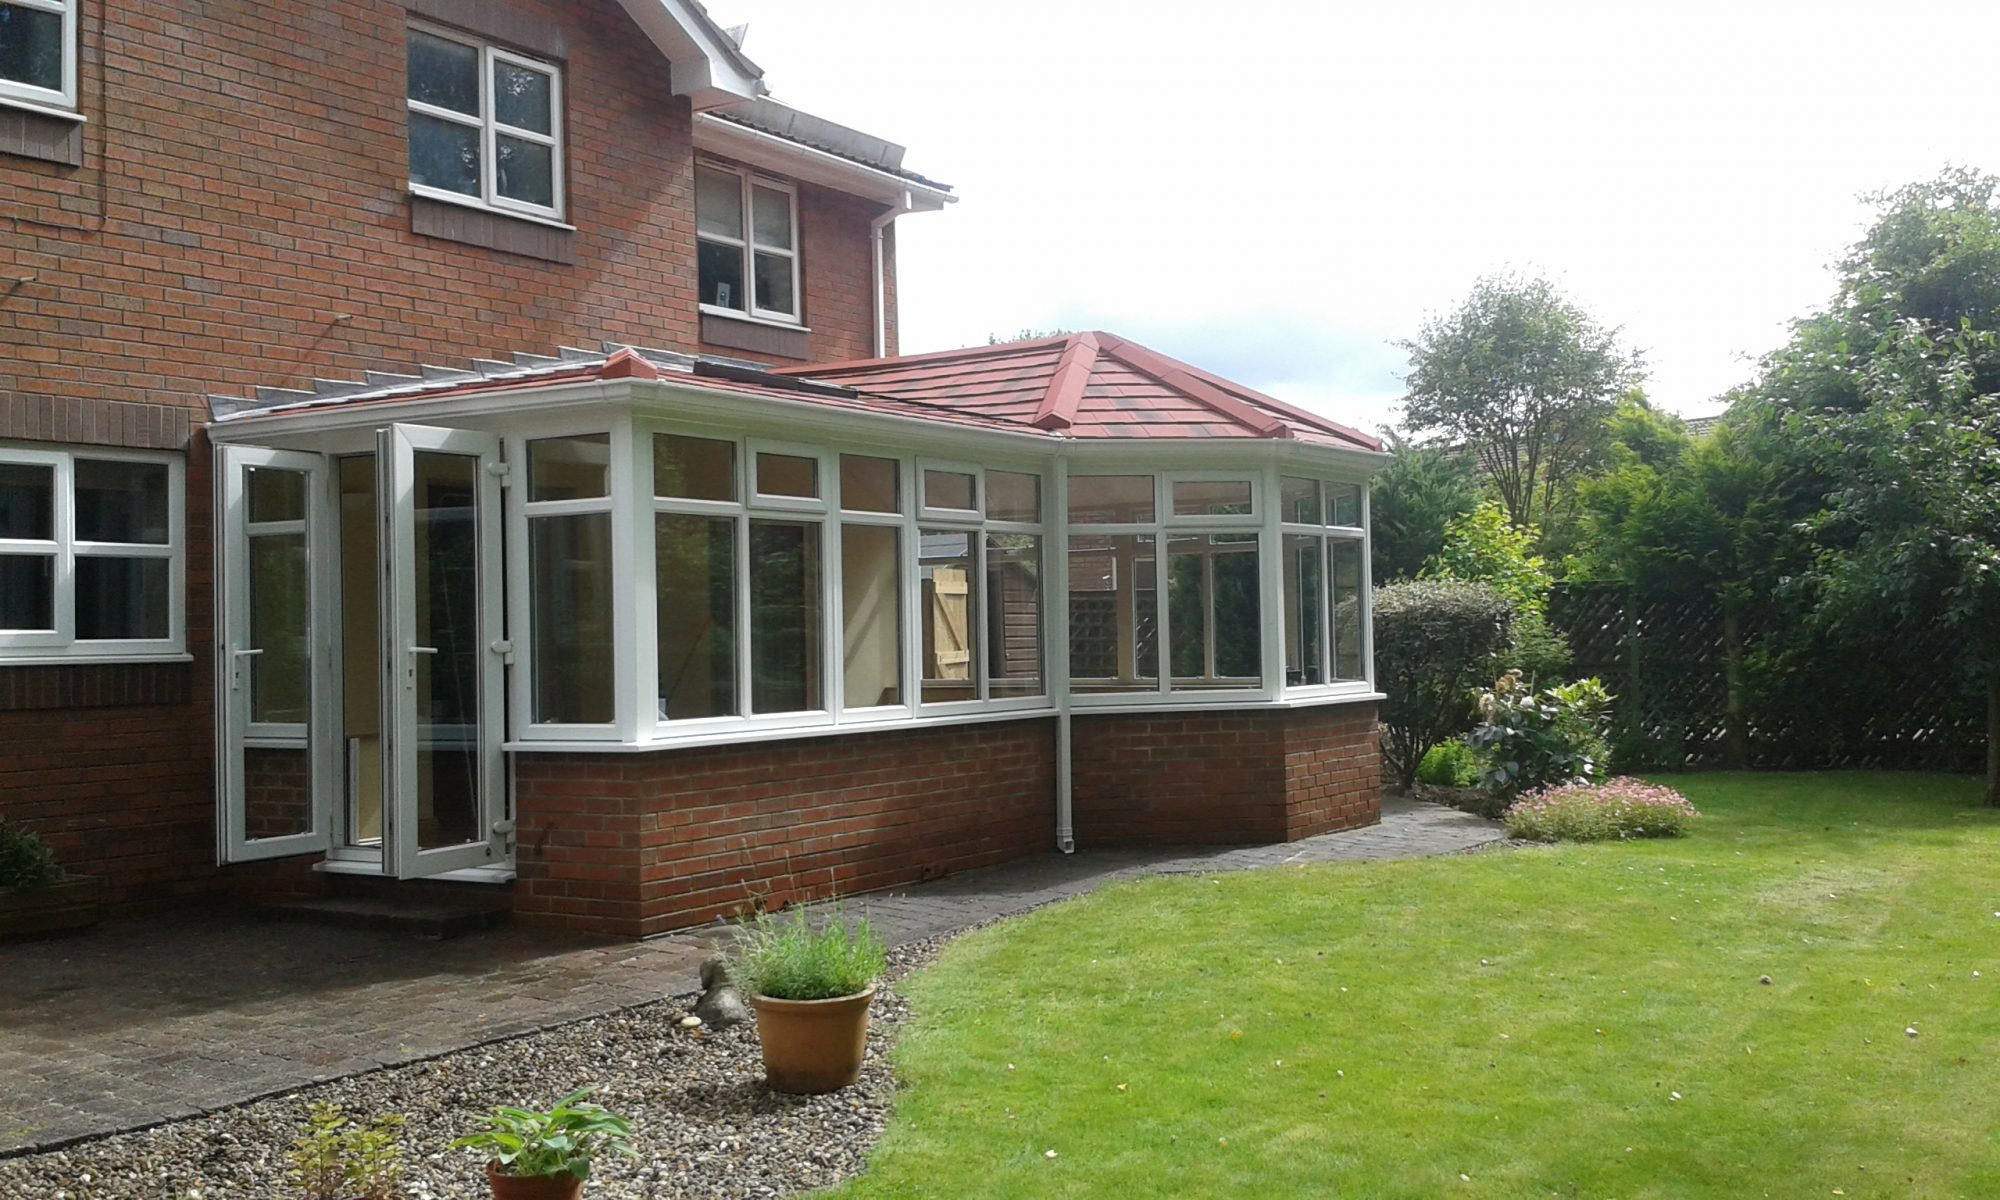 Conservatory Roof Conversion >> Conservatory Roof Conversion (Guardian Warm Roof) - Premier Roof Systems